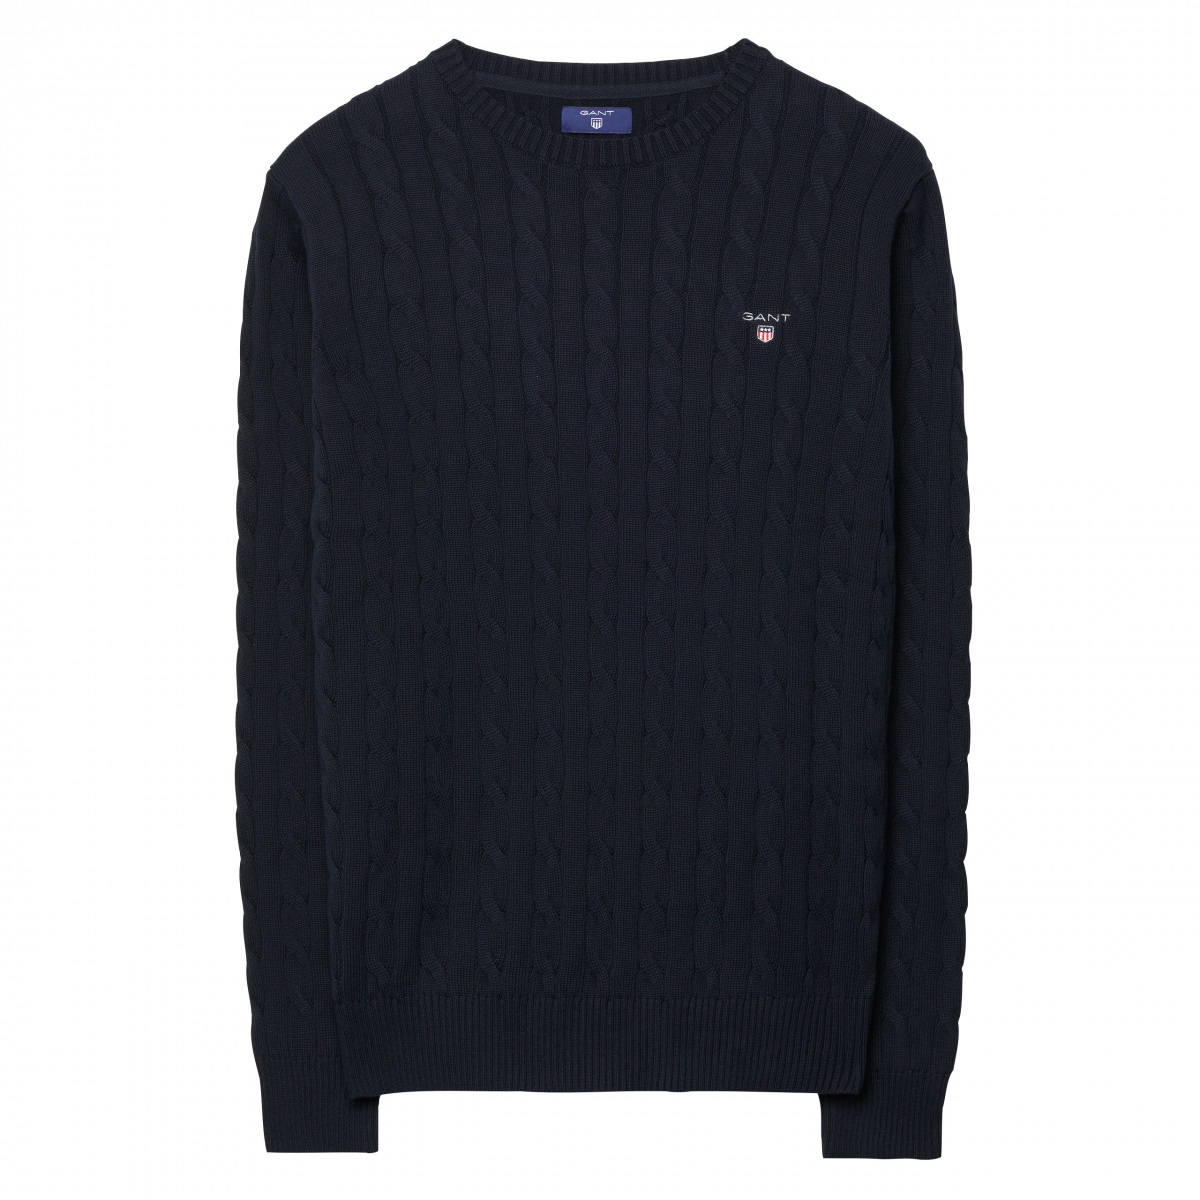 Bild 1 av Gant Teens Cotton Cable Crew